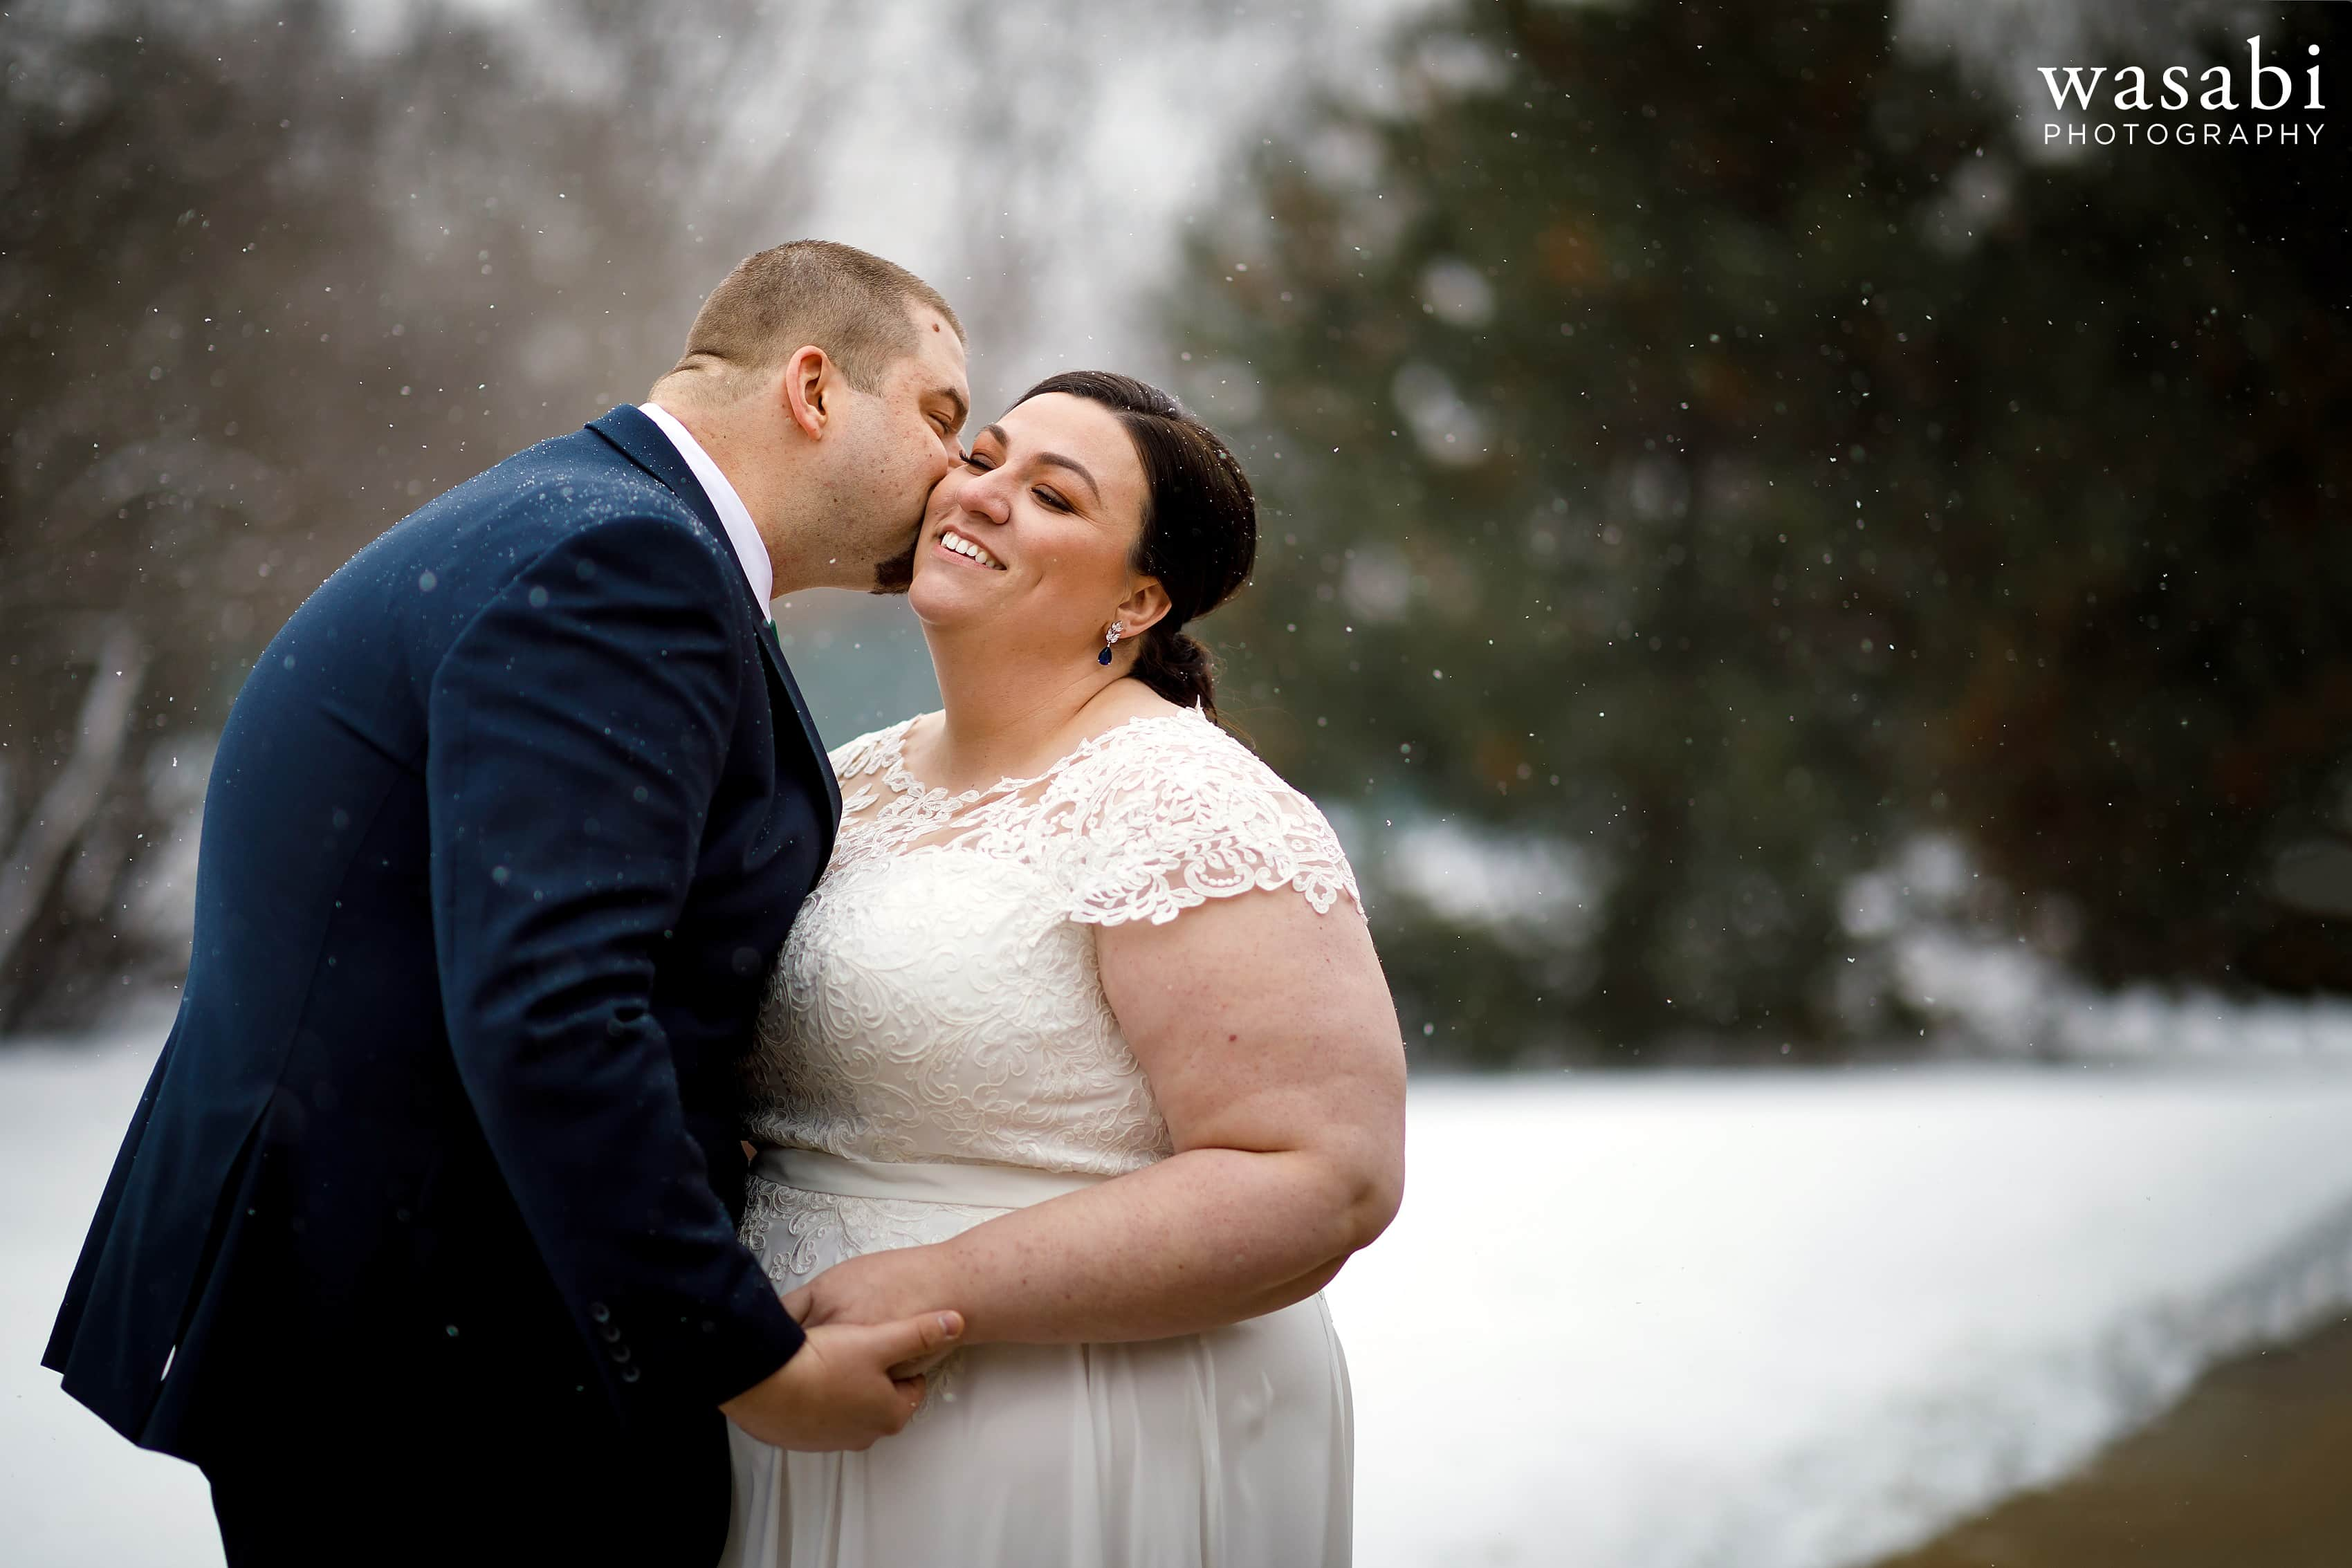 bride and groom pose for wedding portrait with snow coming down around them